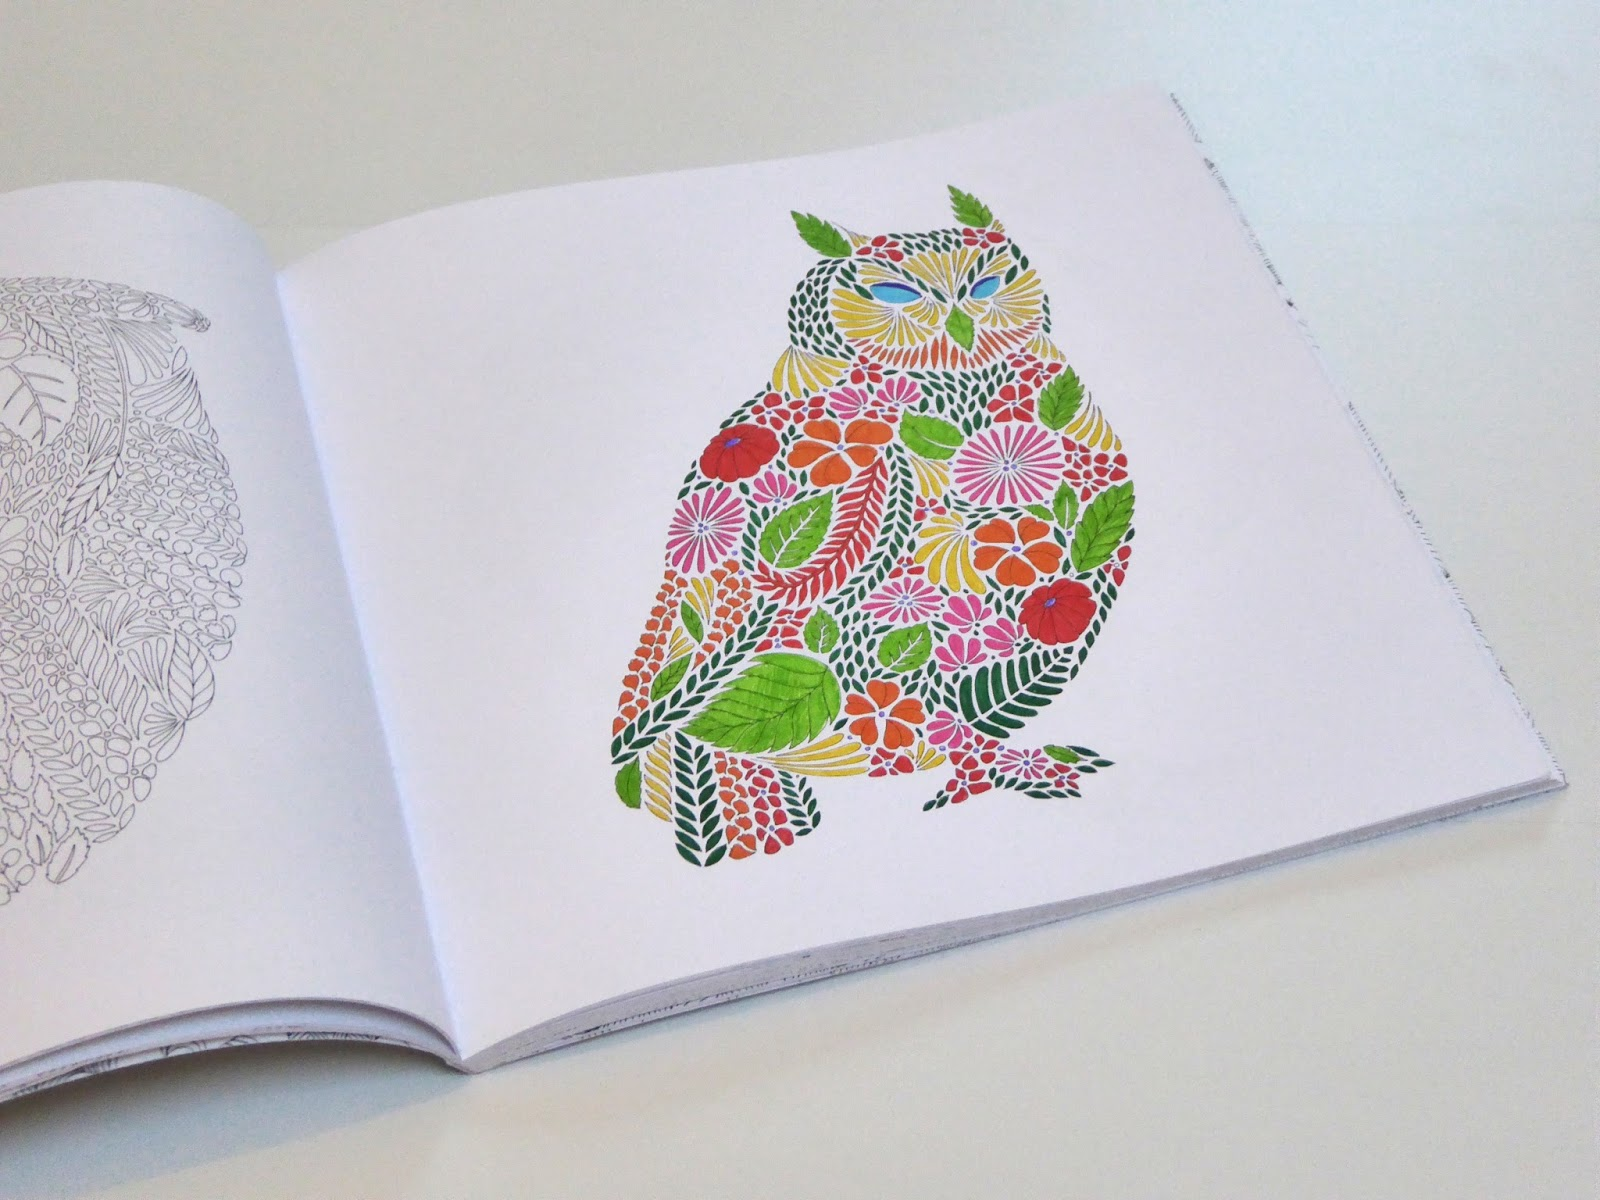 Have You Tried Any Adult Colouring Books Out Do Like Them Let Me Know In The Comments